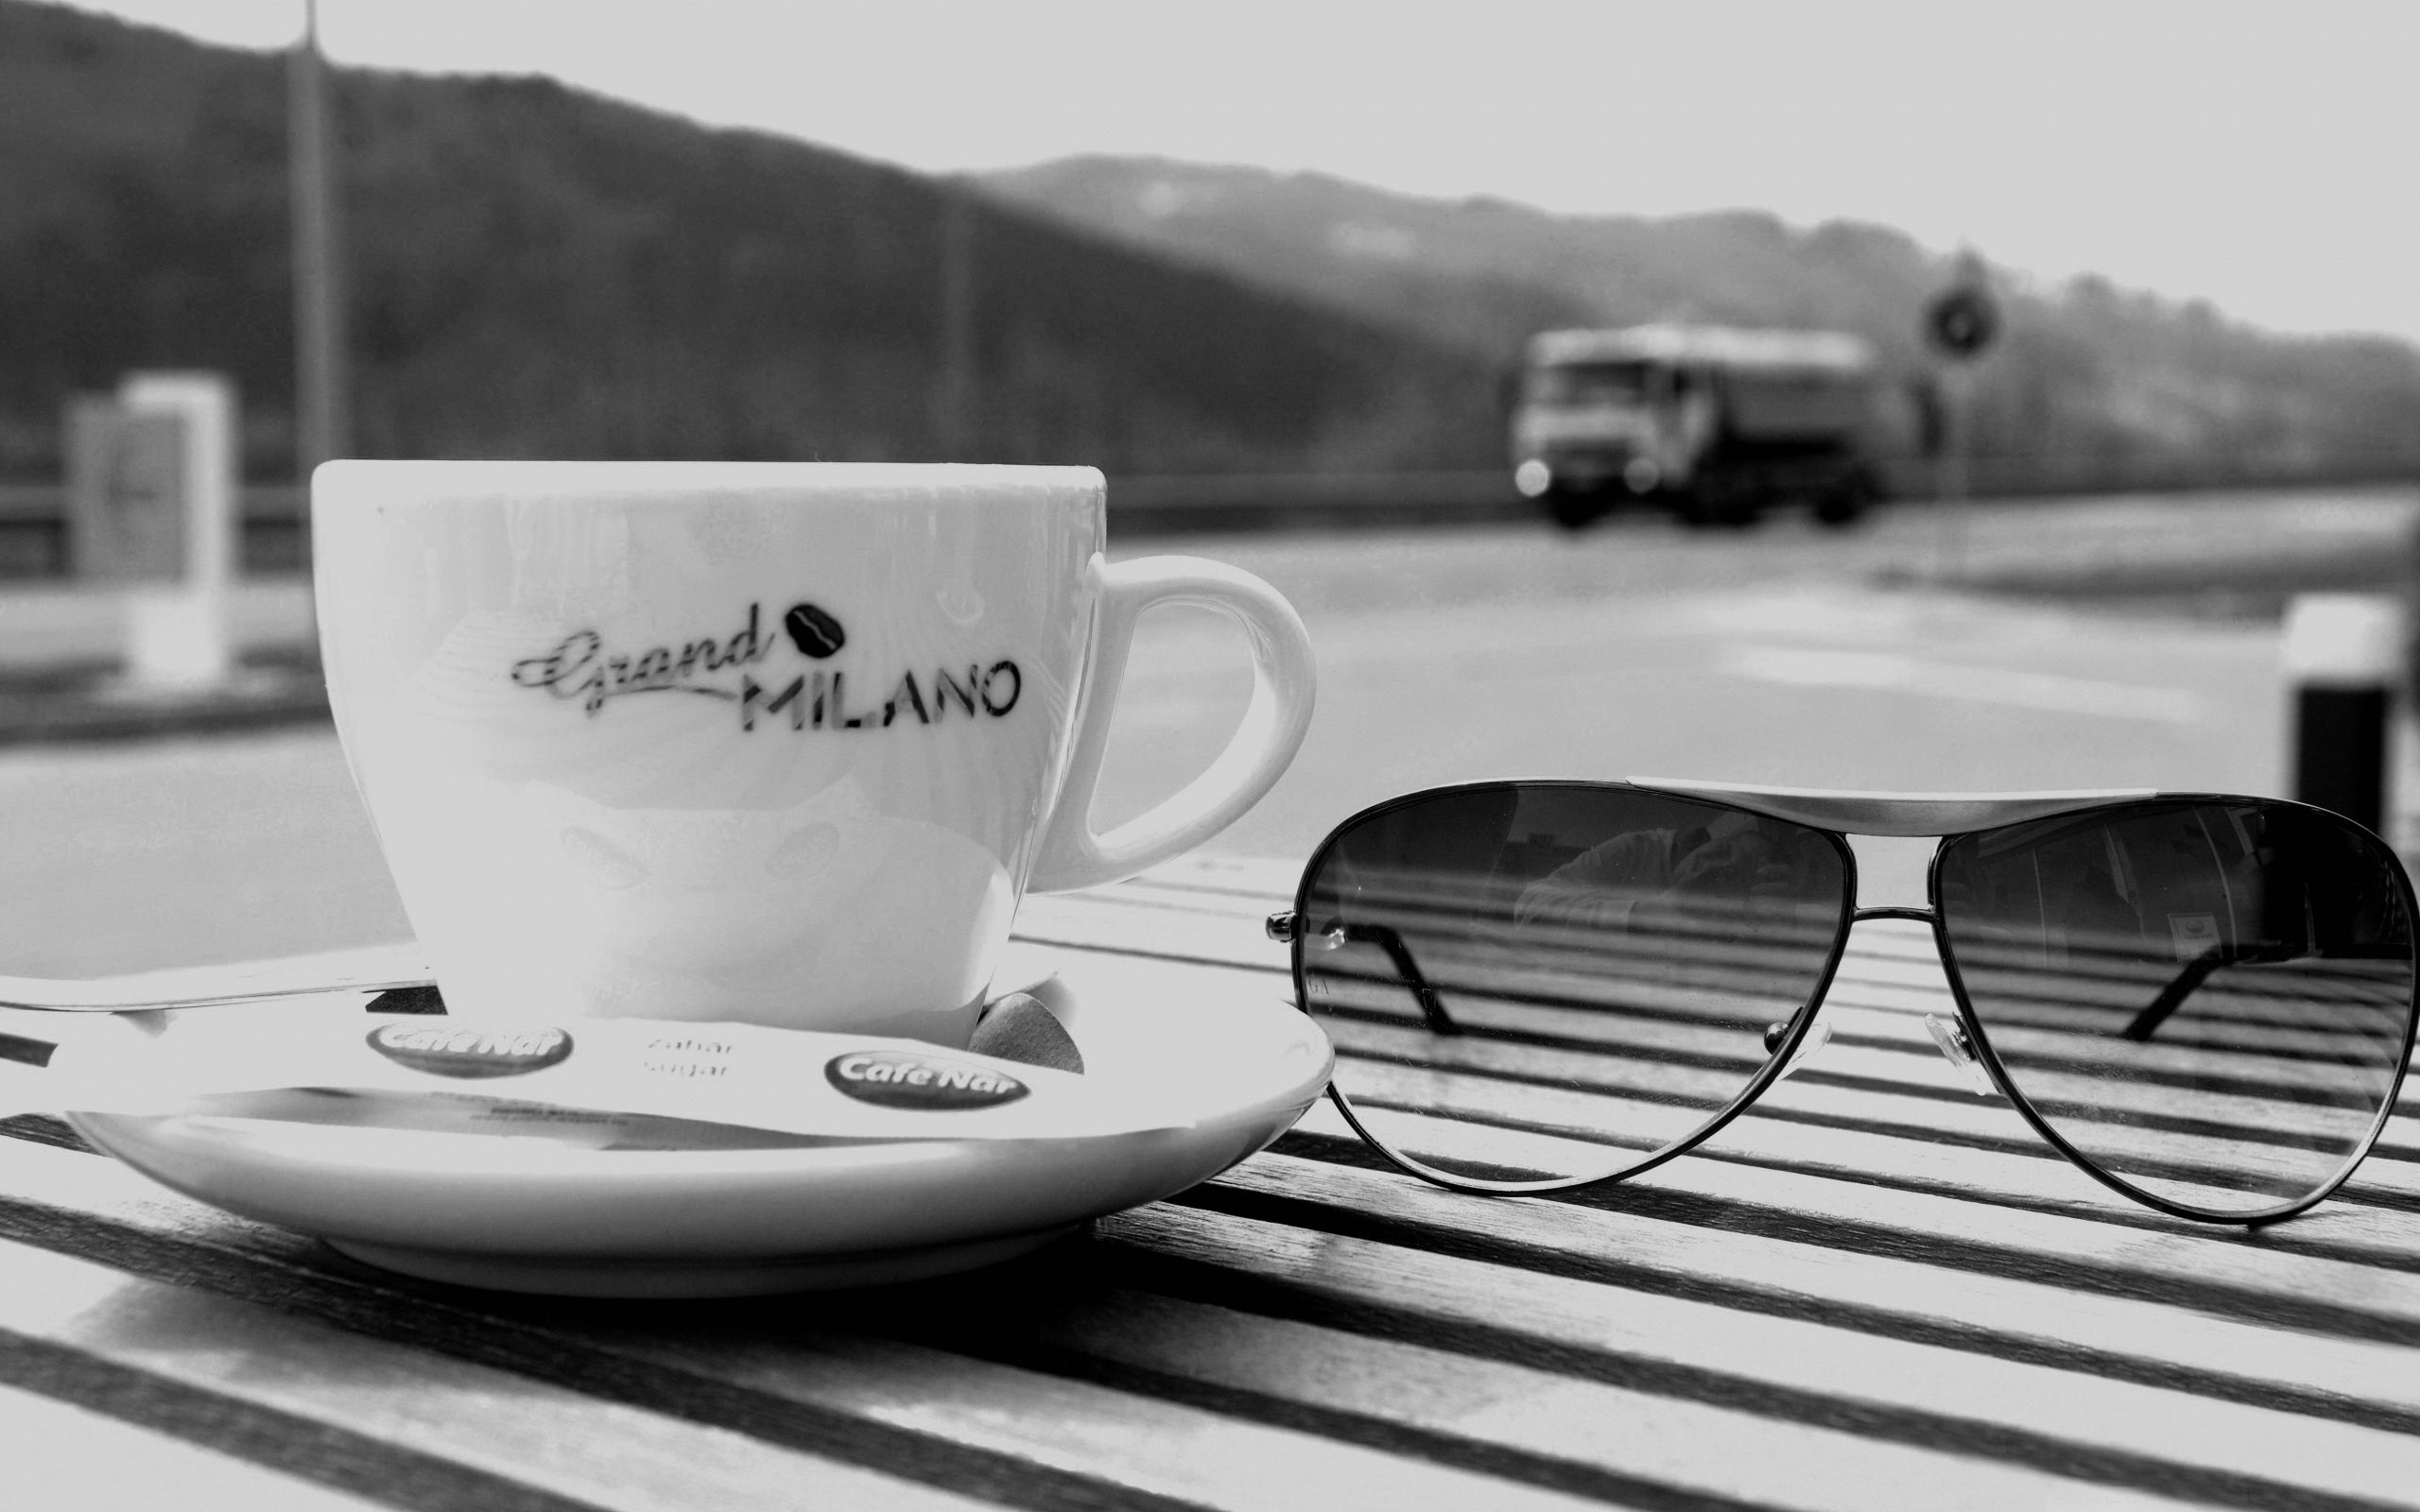 149525 download wallpaper Miscellanea, Miscellaneous, Cup, Cafe, Café, Glasses, Spectacles, Table, Expectation, Waiting screensavers and pictures for free